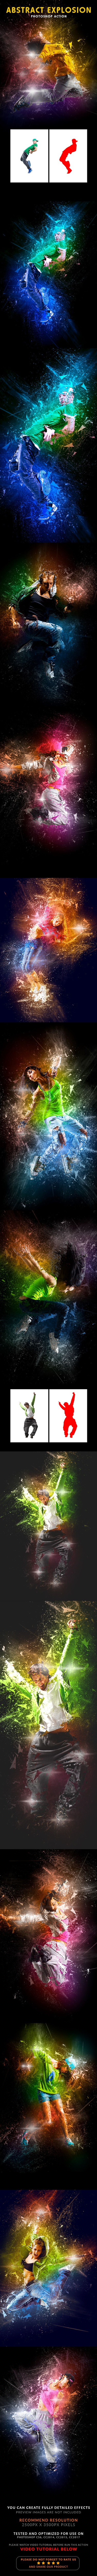 Abstract Explosion Photoshop Action - Photo Effects Actions